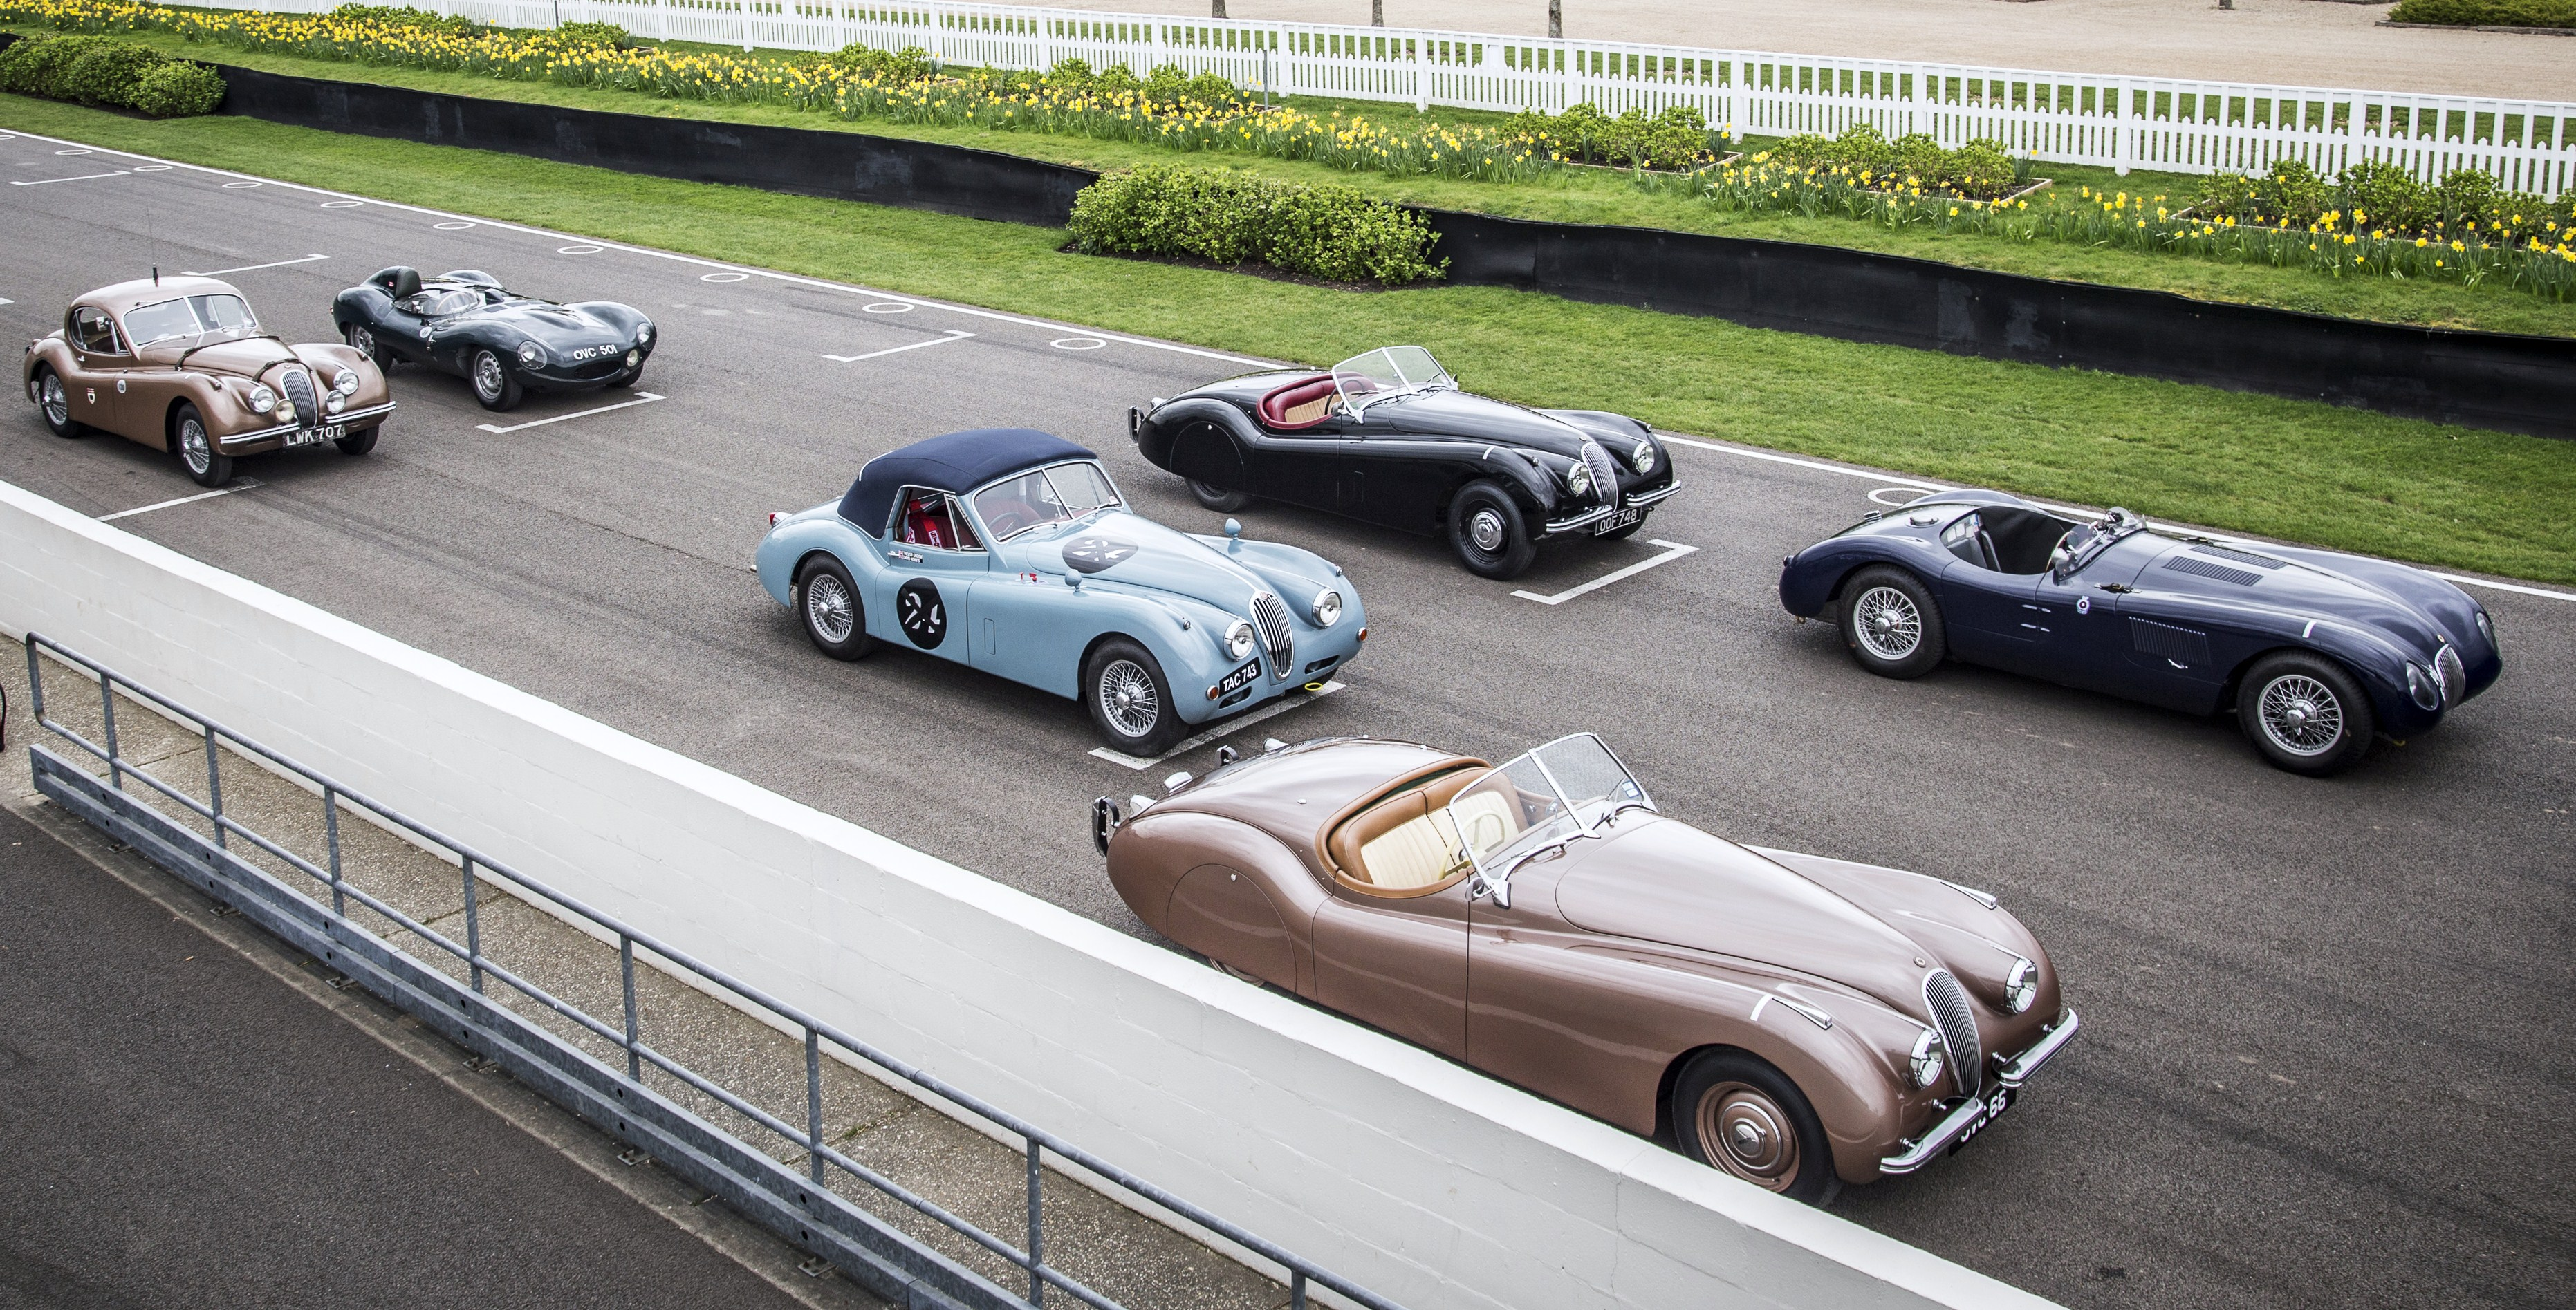 Famous Jaguar Sports Cars Racers Entered In Mille Miglia - Sports cars types